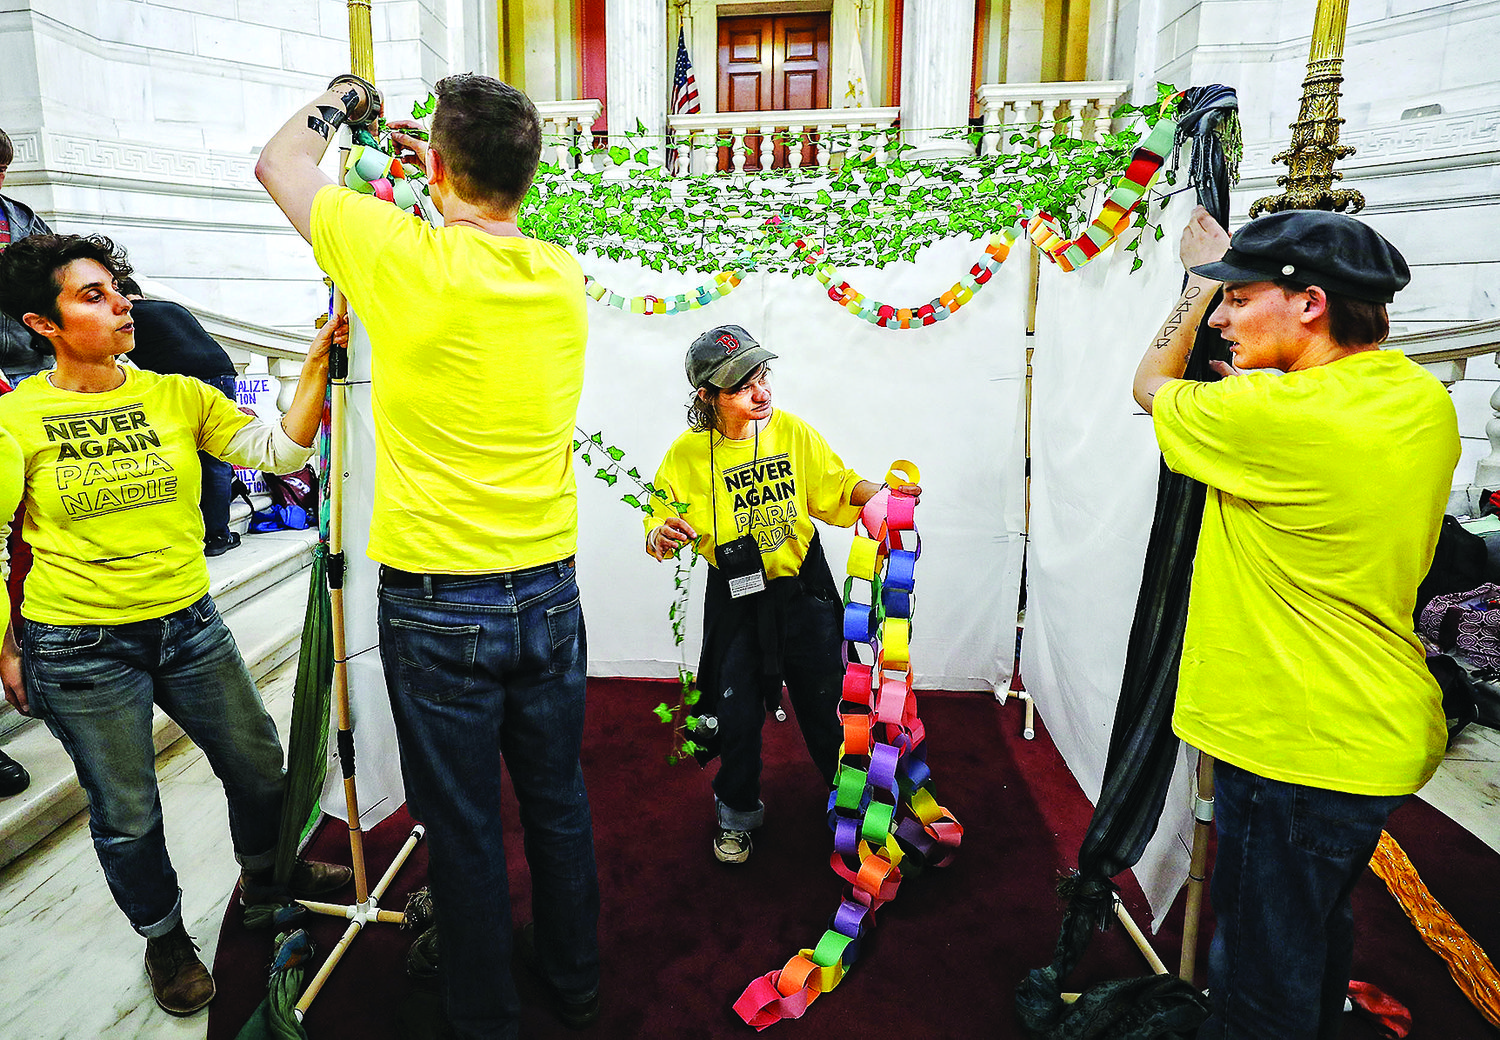 A rally at the RI State House sponsored by Never Again Action included building a sukkah.